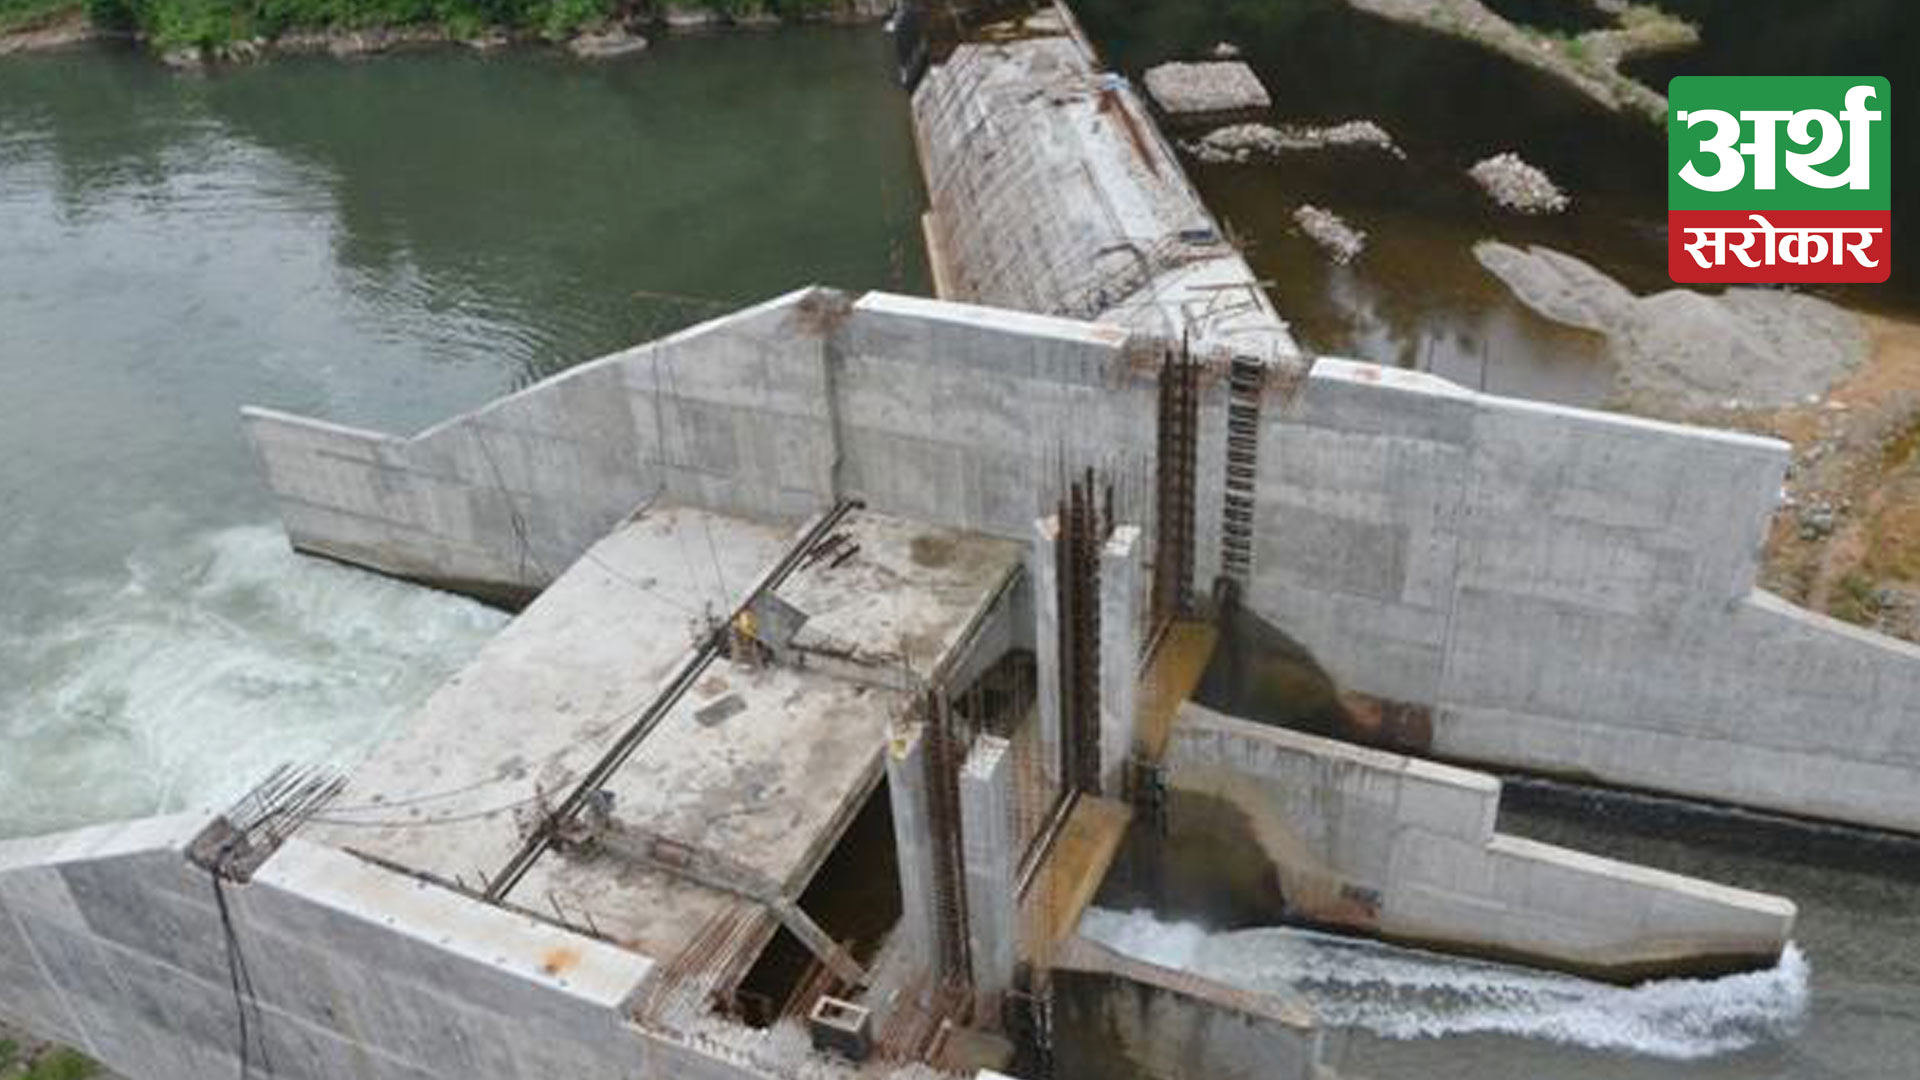 Hydro project sees delay in equipment installation and production